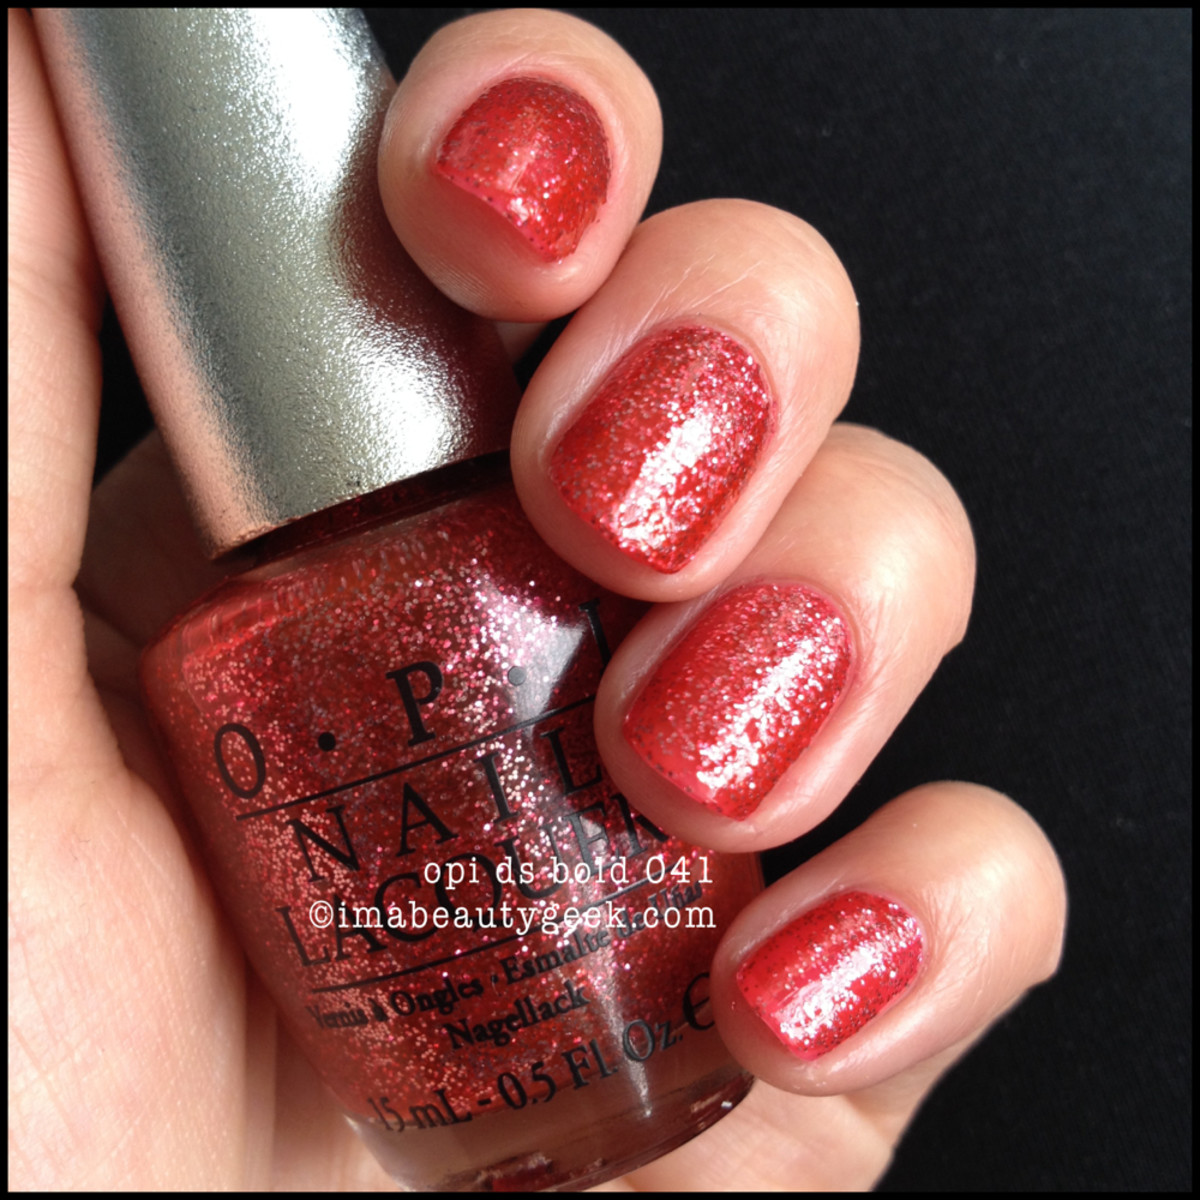 OPI DS Bold 041